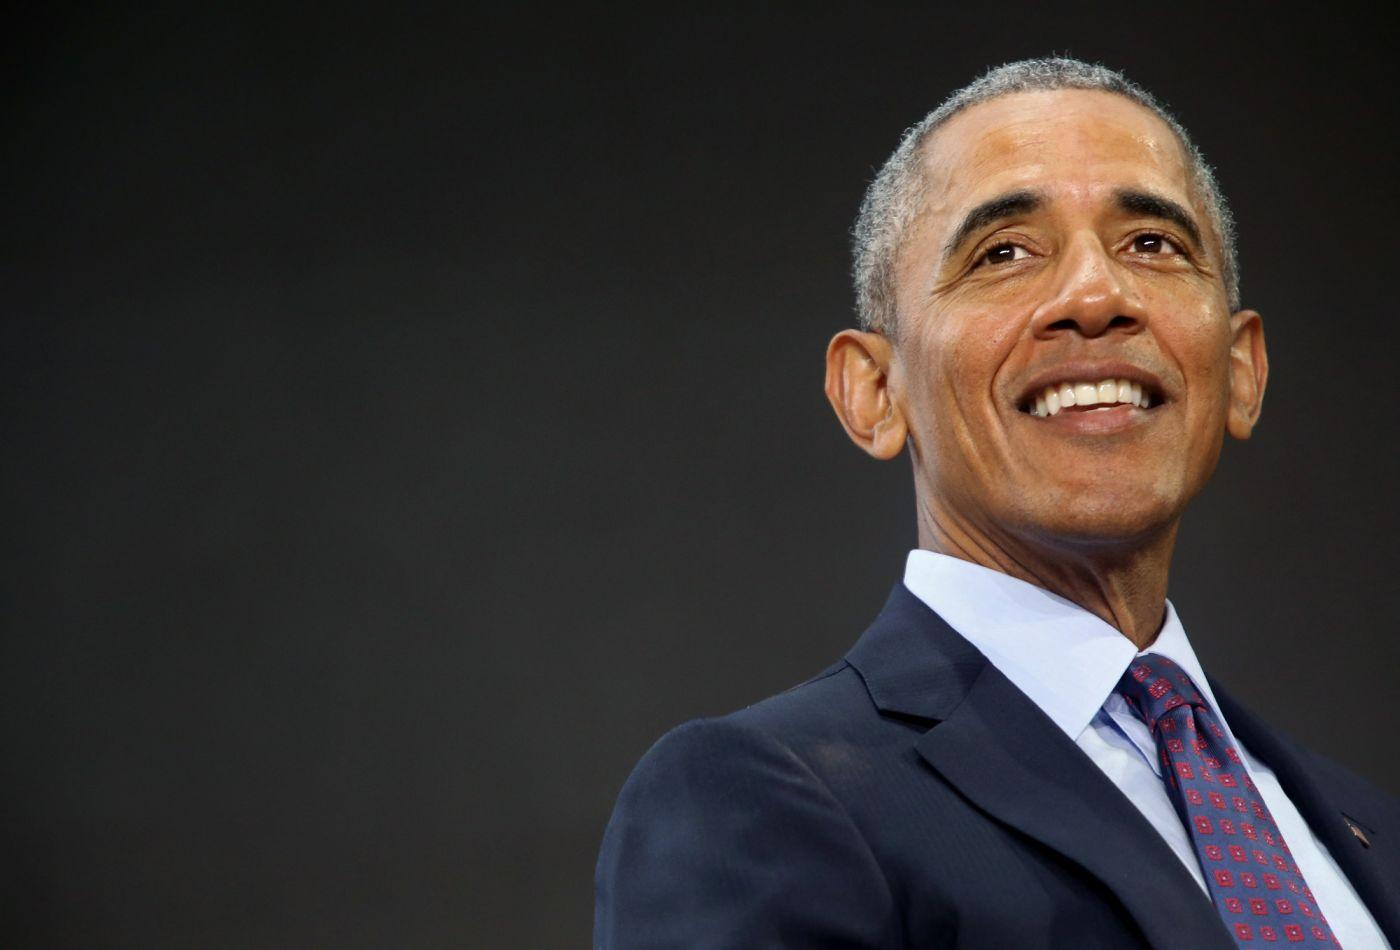 Barack Obama Slams 'Cancel Culture' After Rapper T.I. Addressed The Subject - See The Video